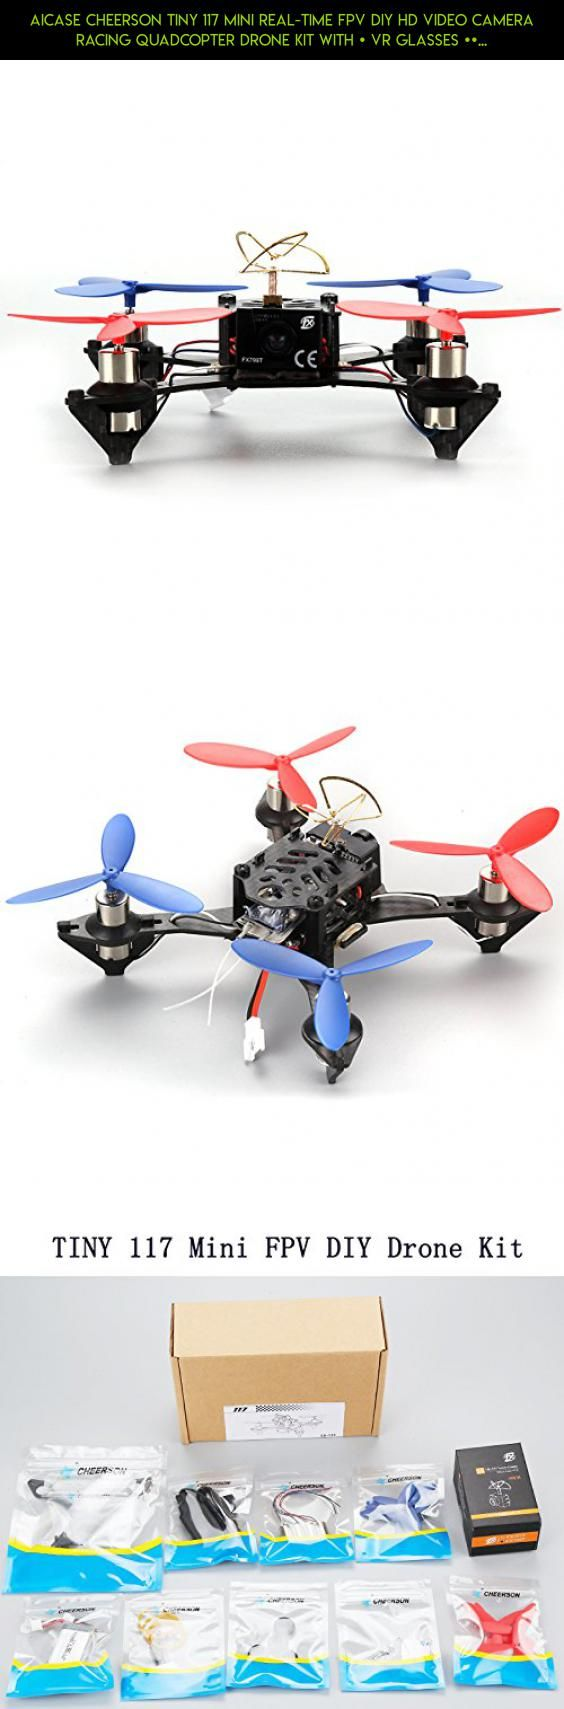 AICase Cheerson TINY 117 Mini Real-time FPV DIY HD Video